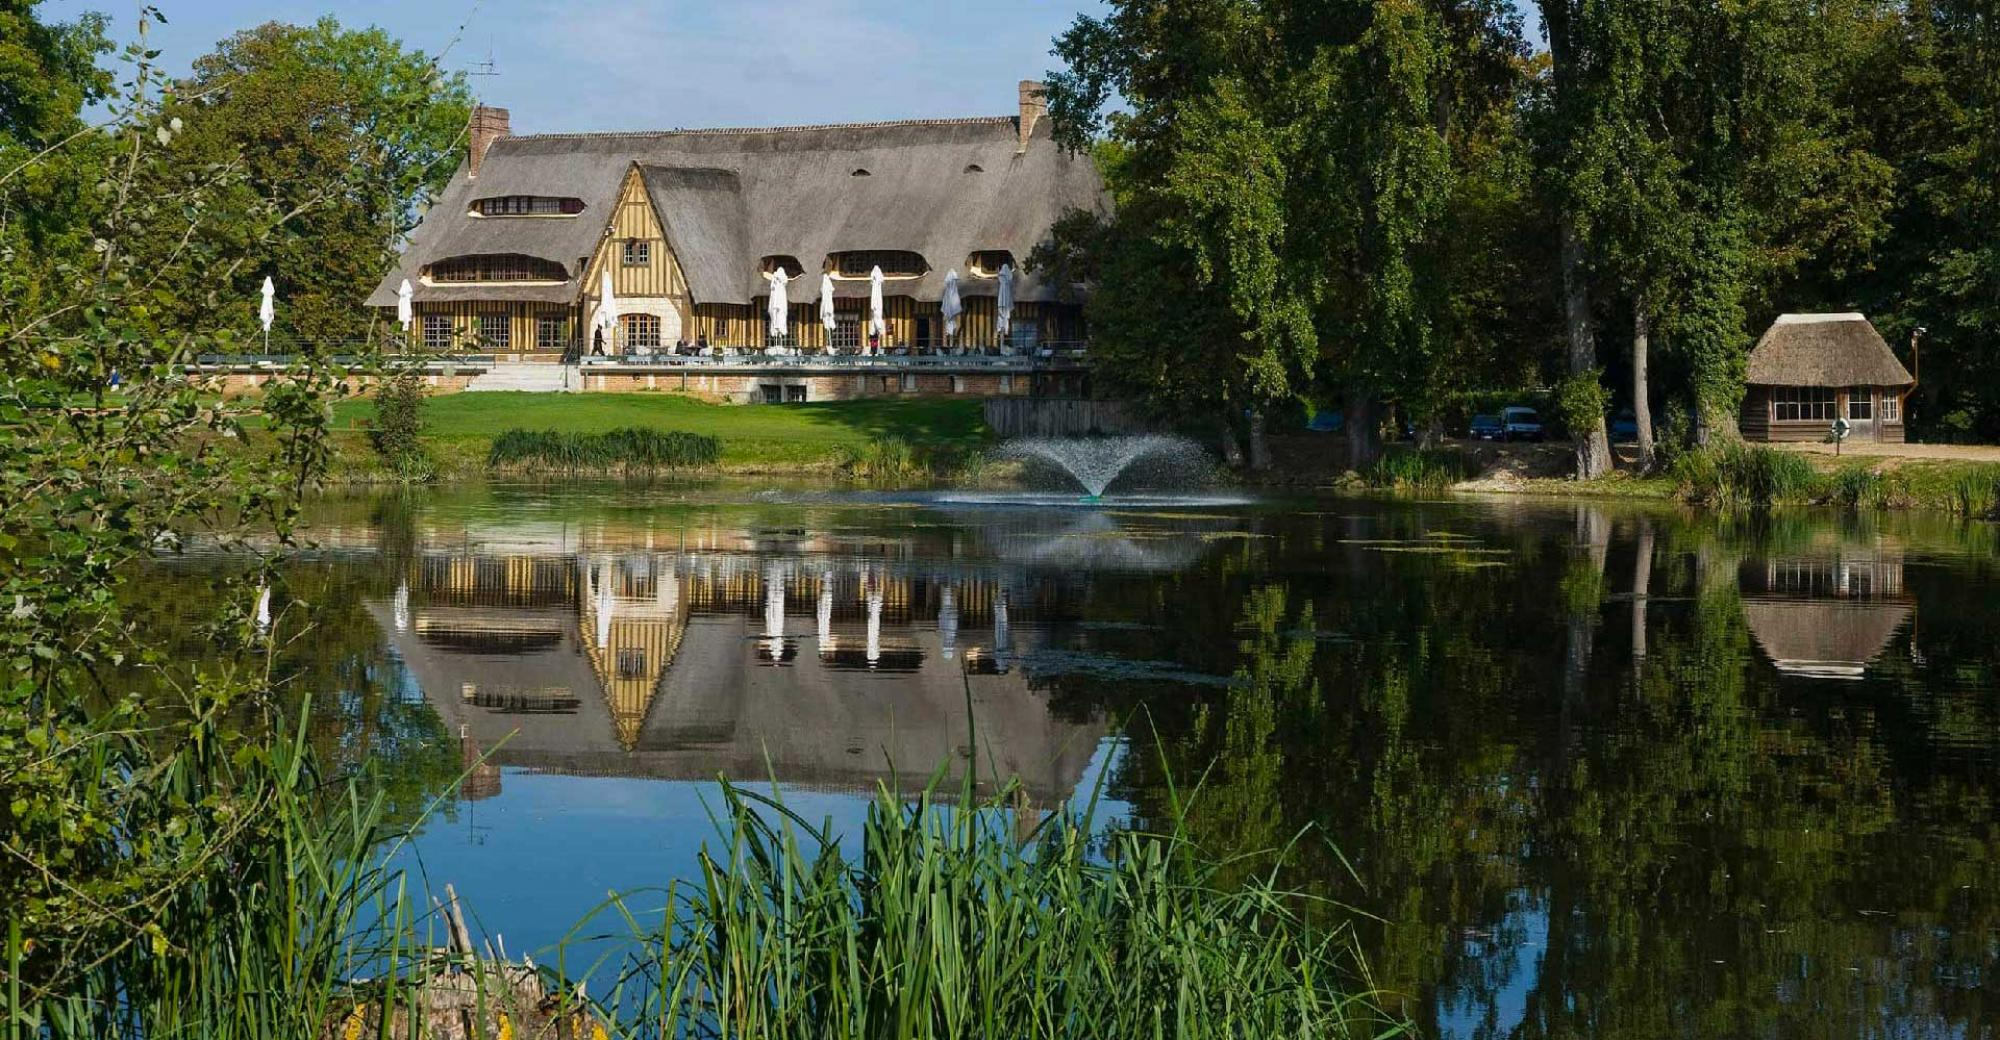 Golf du Vaudreuil provides lots of the best golf course in Normandy